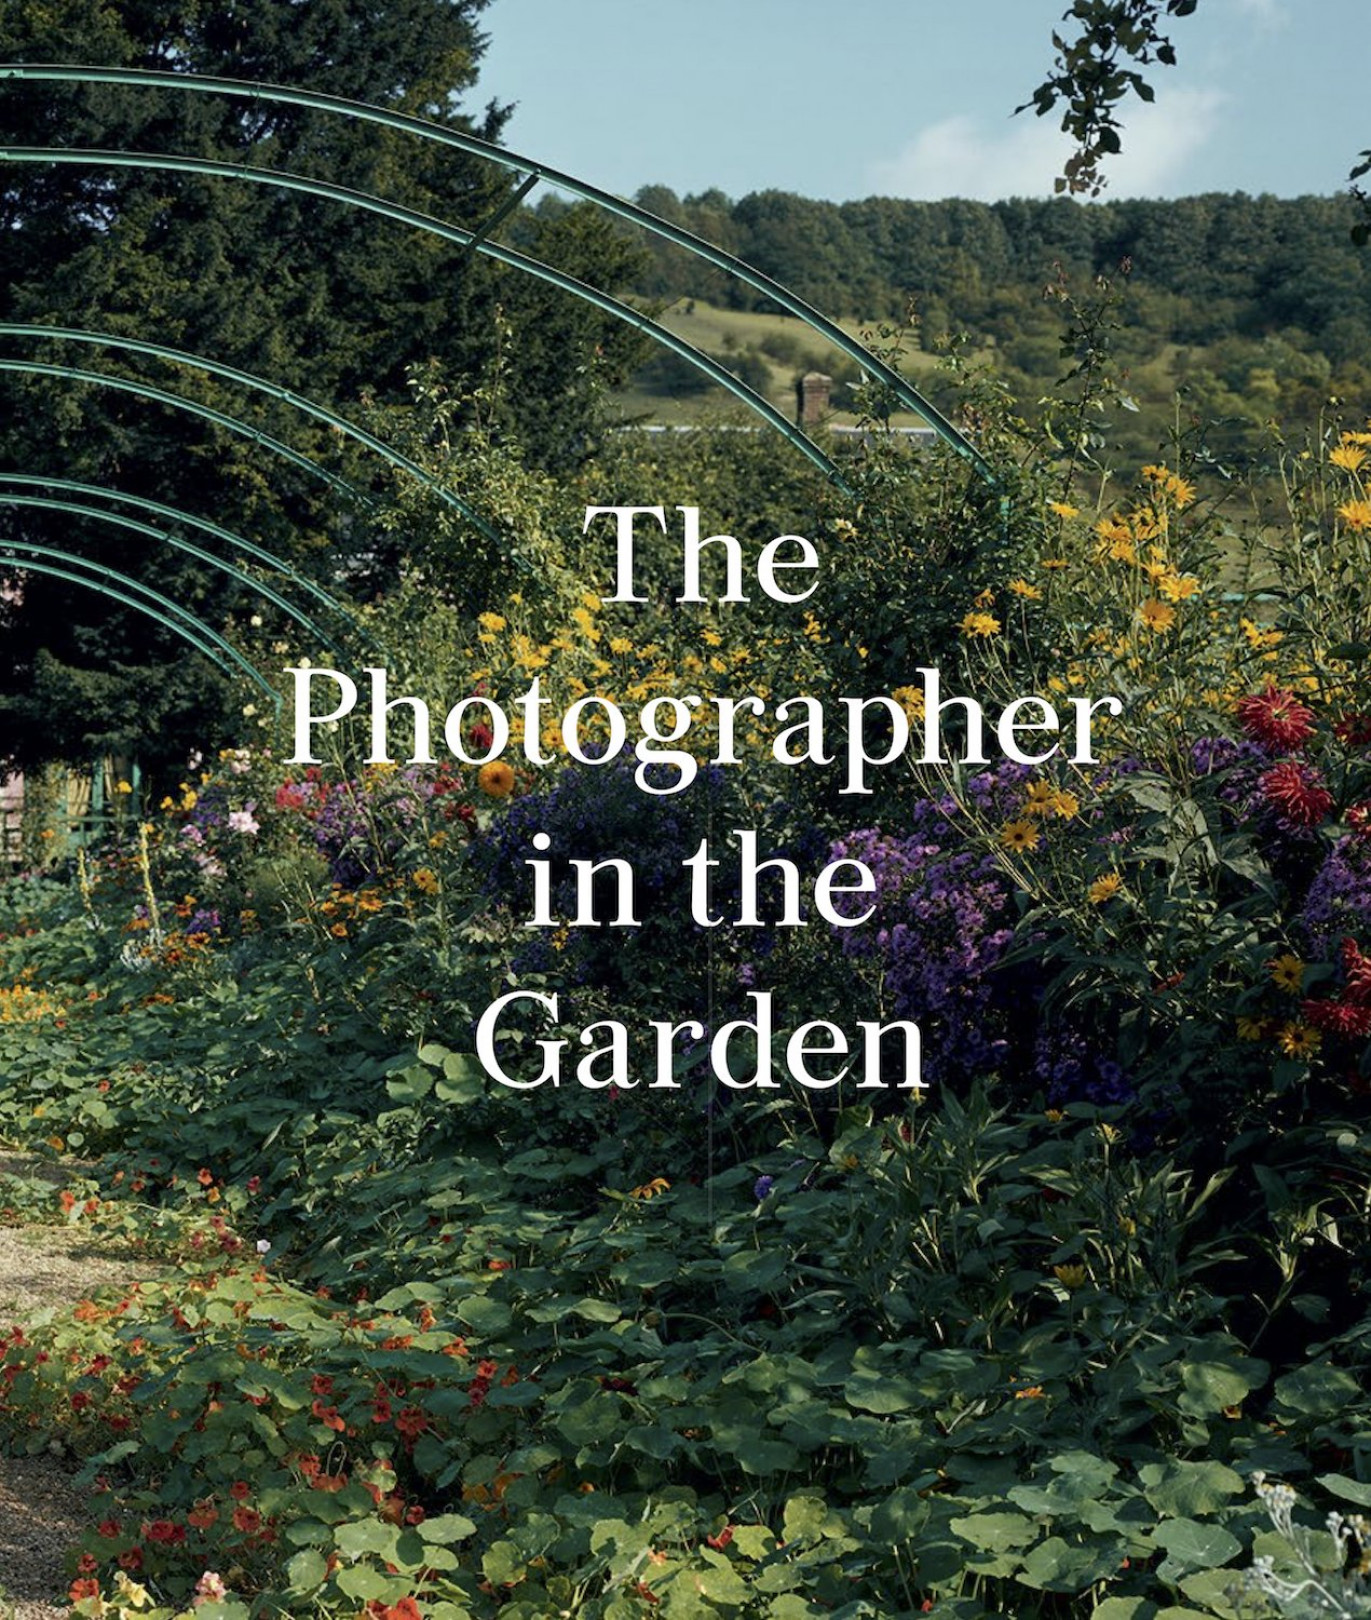 『The Photographer in the Garden』